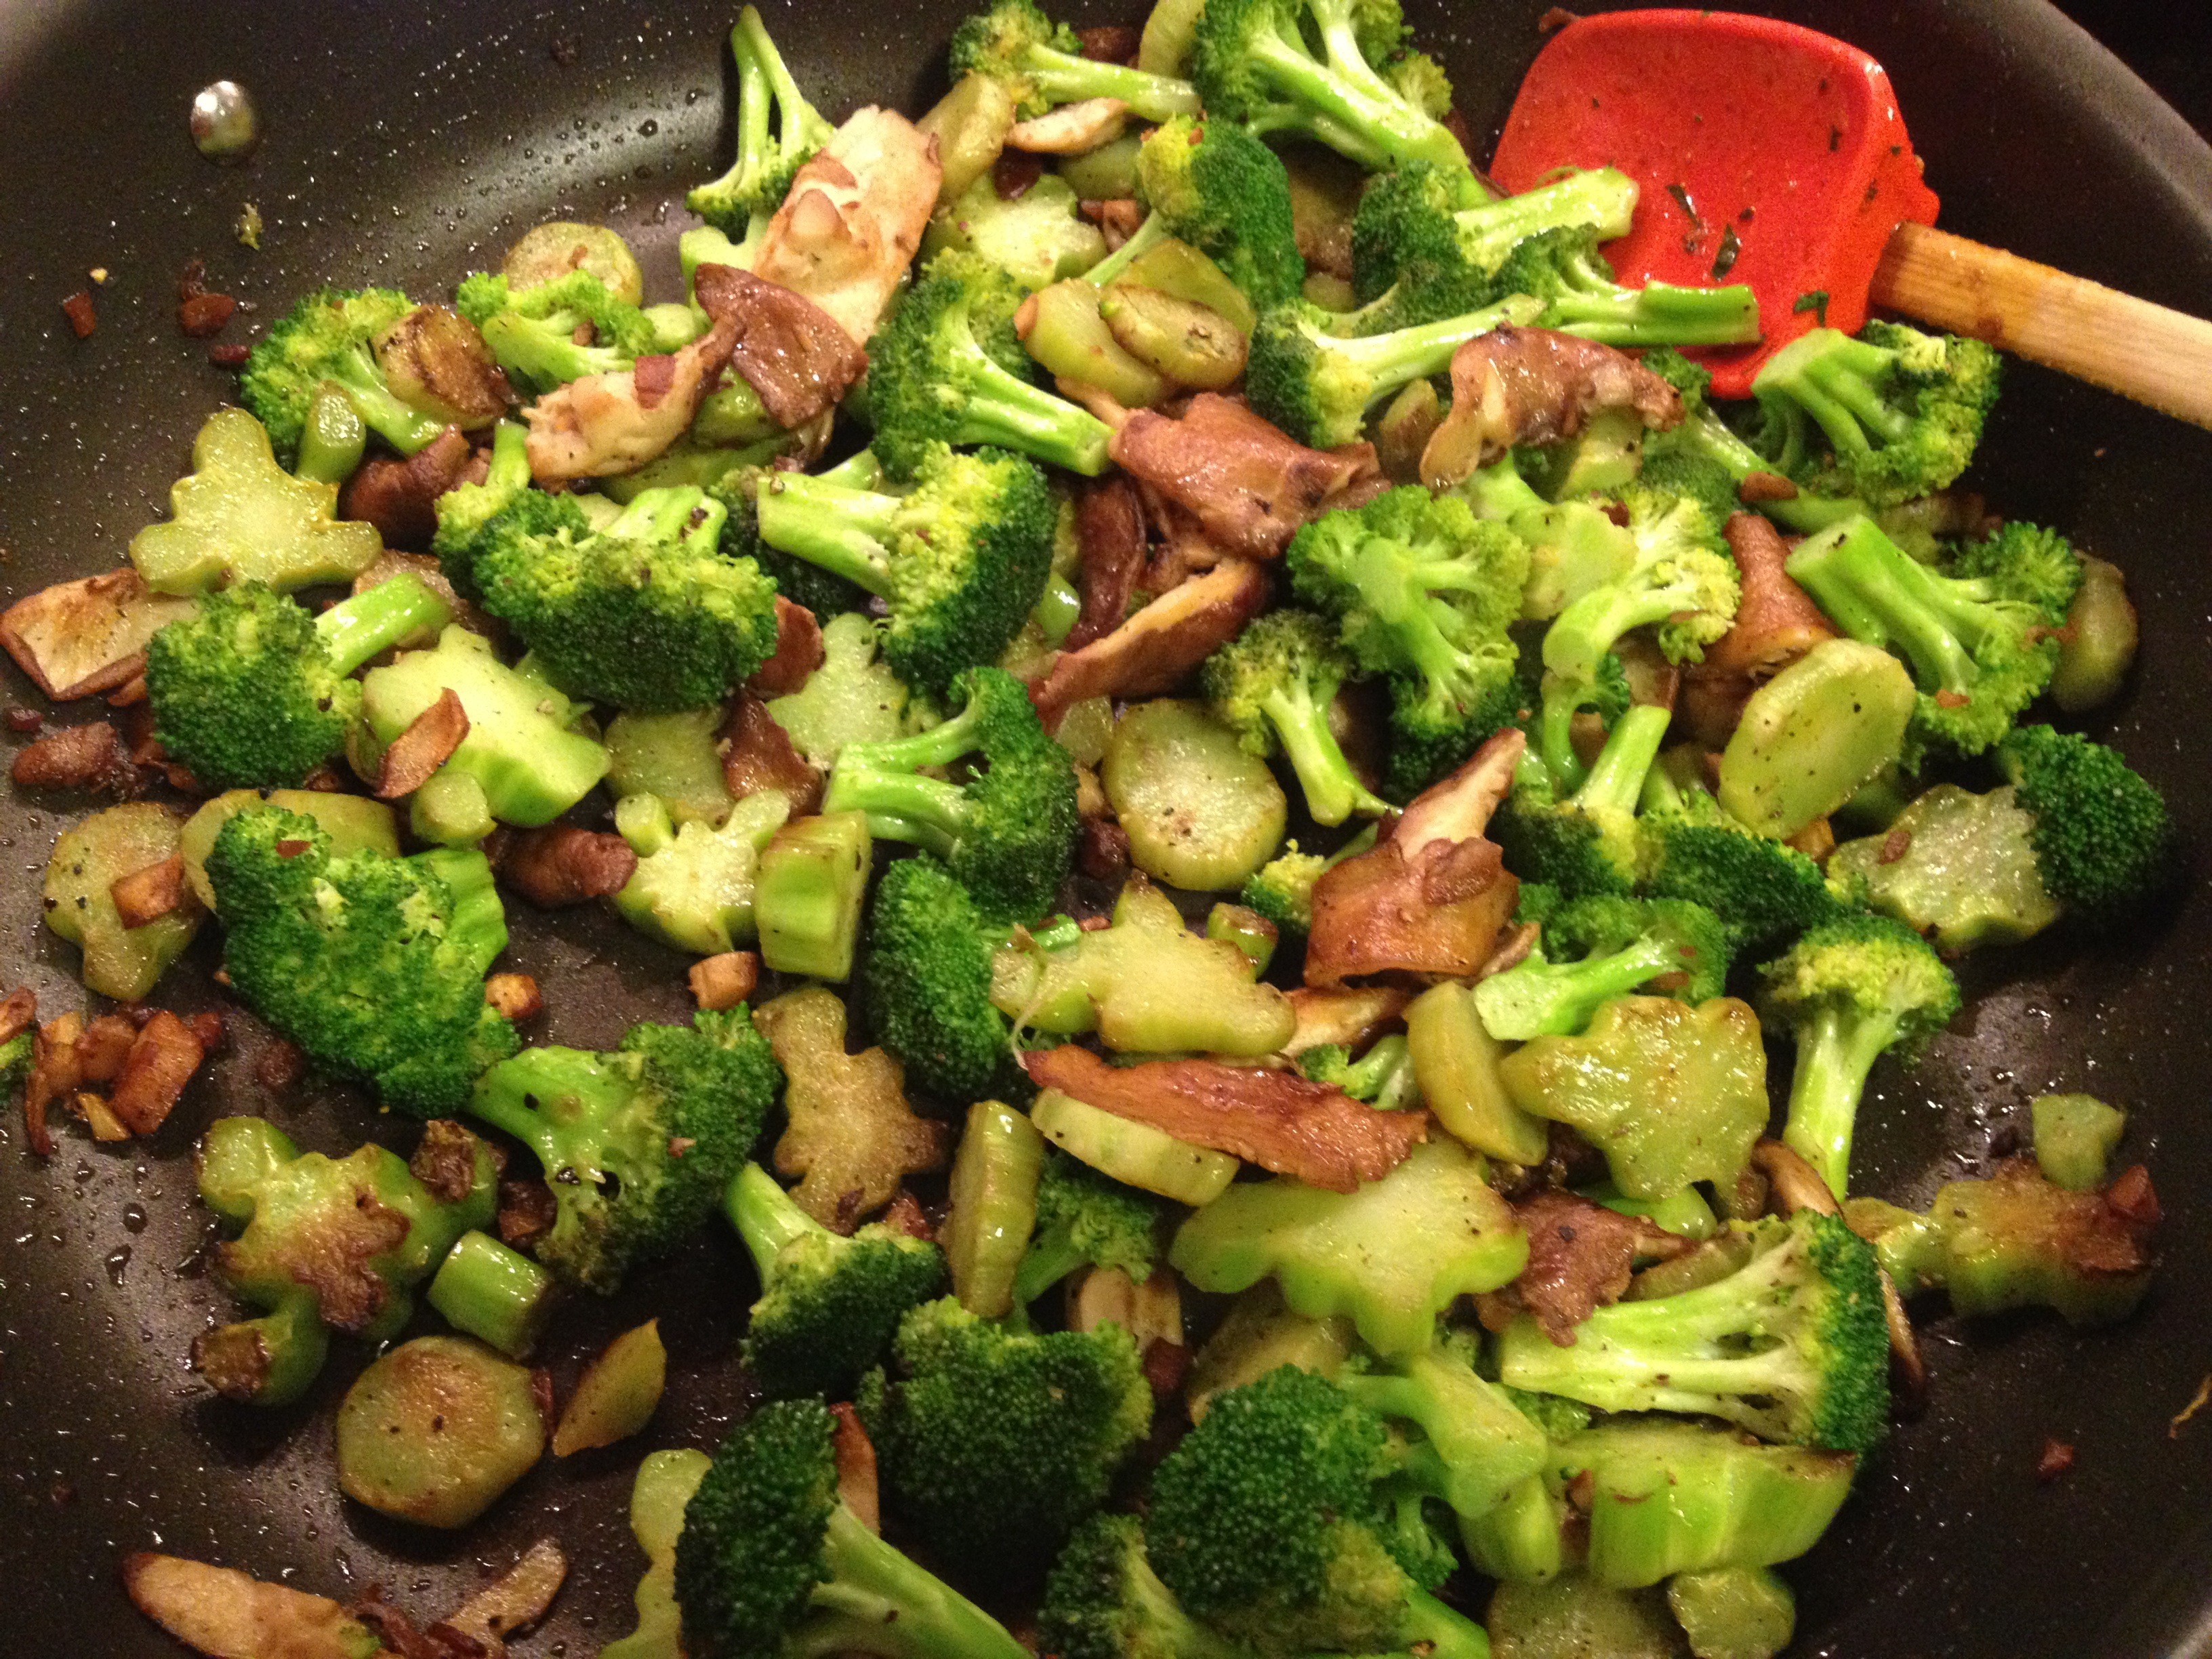 Sauteed Broccoli with shiitake mushrooms in butter and olive oil in a pan.